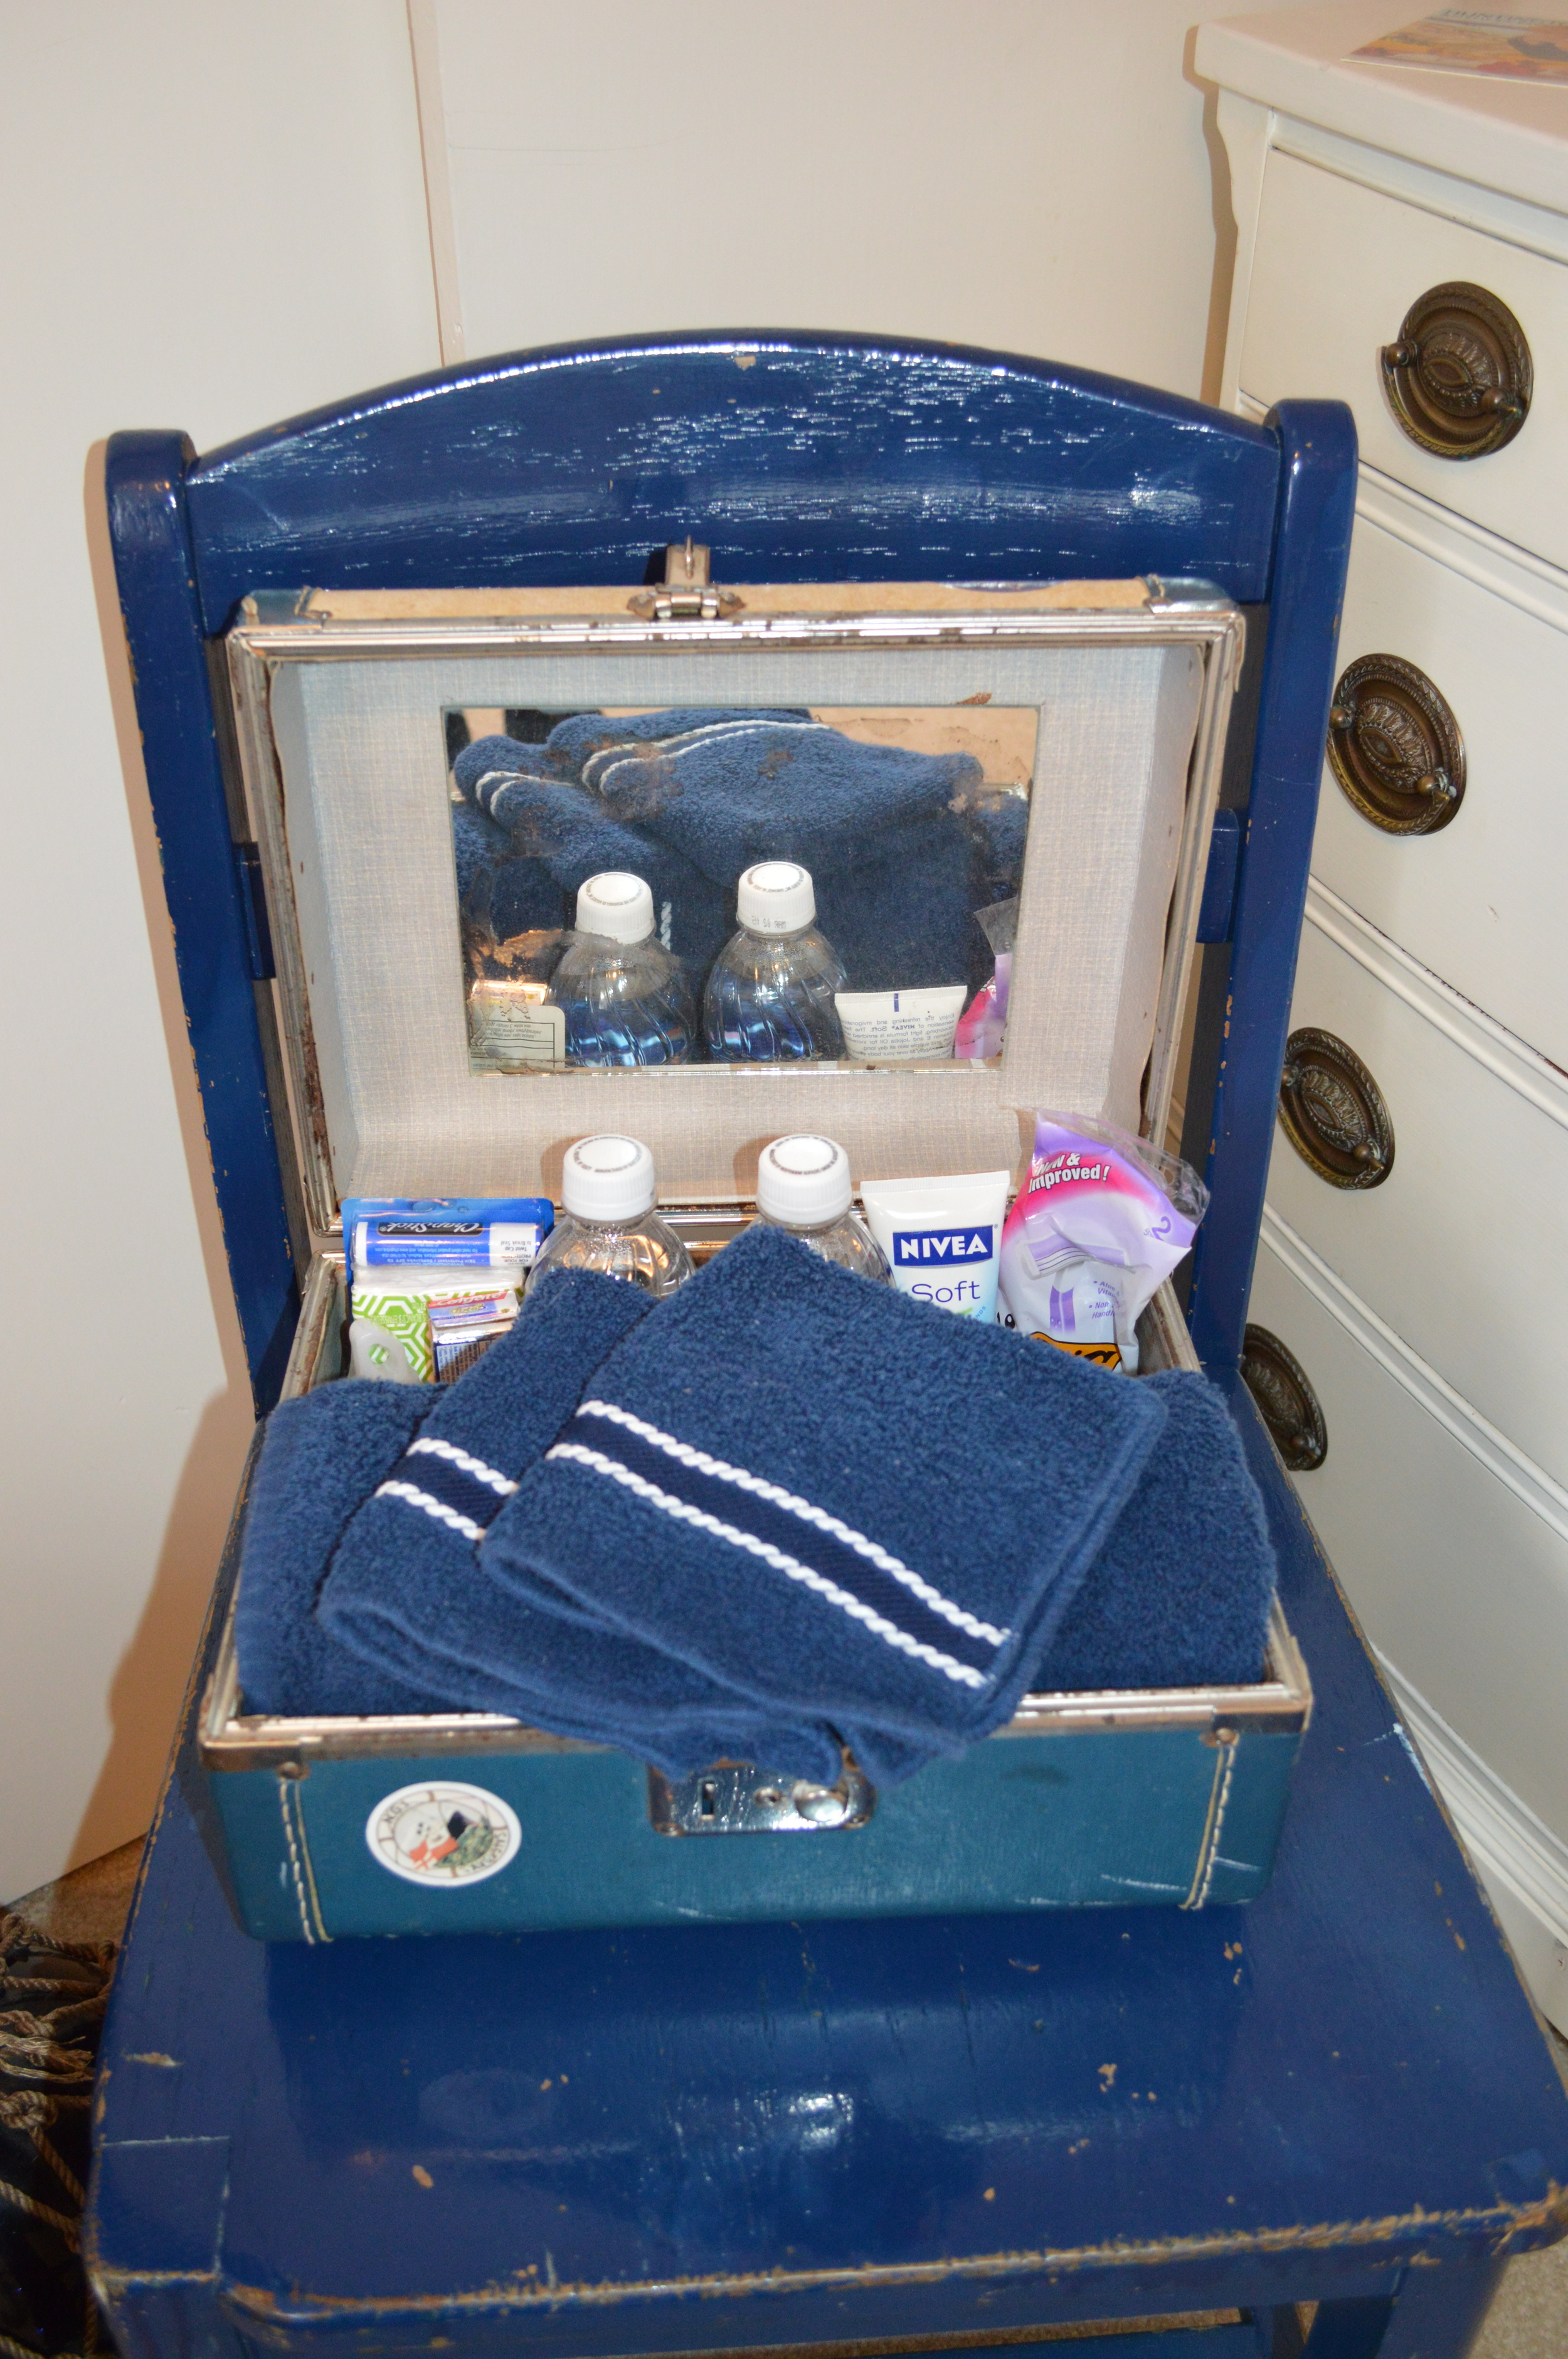 Guest amenities in old cosmetic case in nautical guest room...